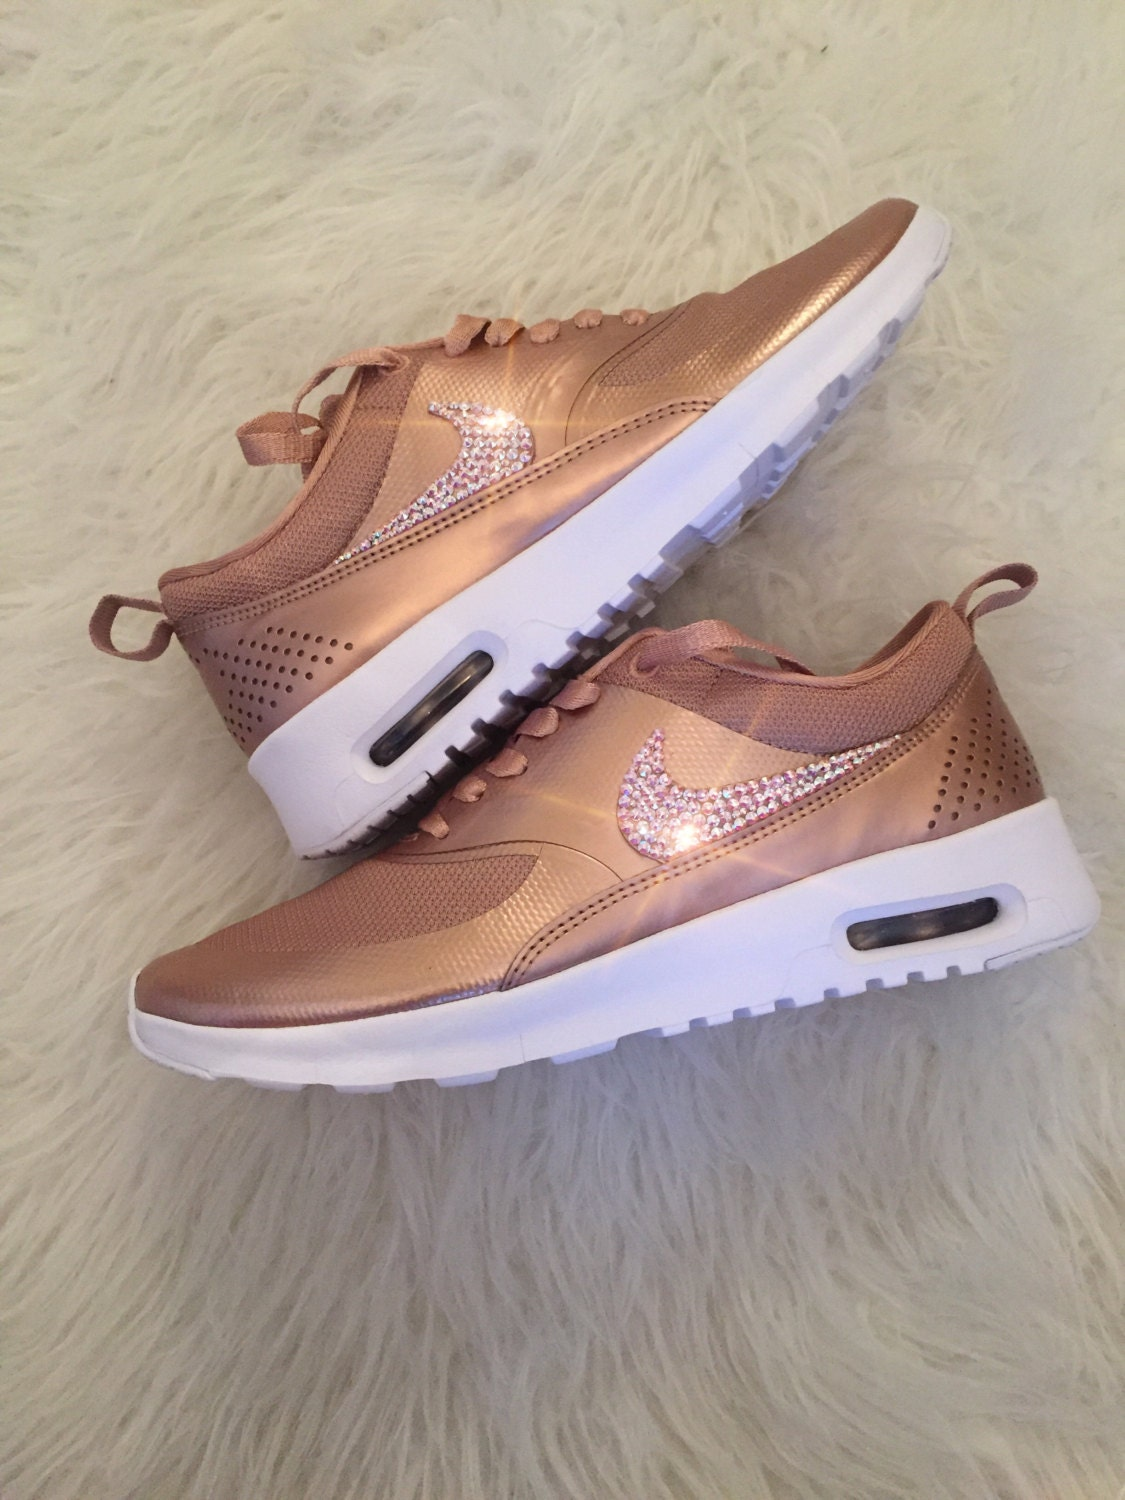 nike air max thea rose gold with swarovski crystals. Black Bedroom Furniture Sets. Home Design Ideas